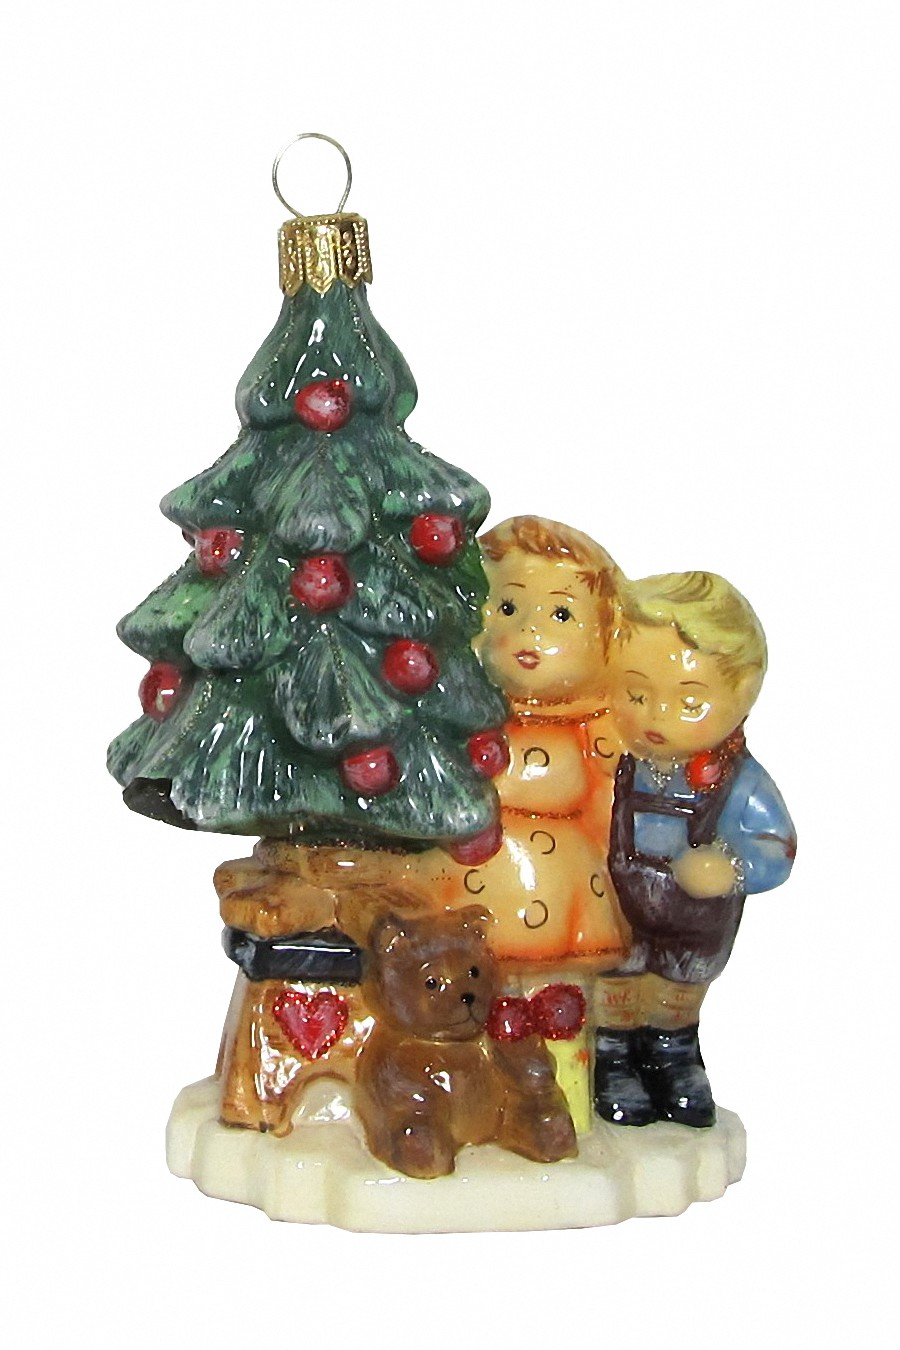 Hummel Christmas Ornaments.Hummel Figurine Christmas Ornament Wonder Of Christmas Original Mi Hummel Collection Gift Boxed